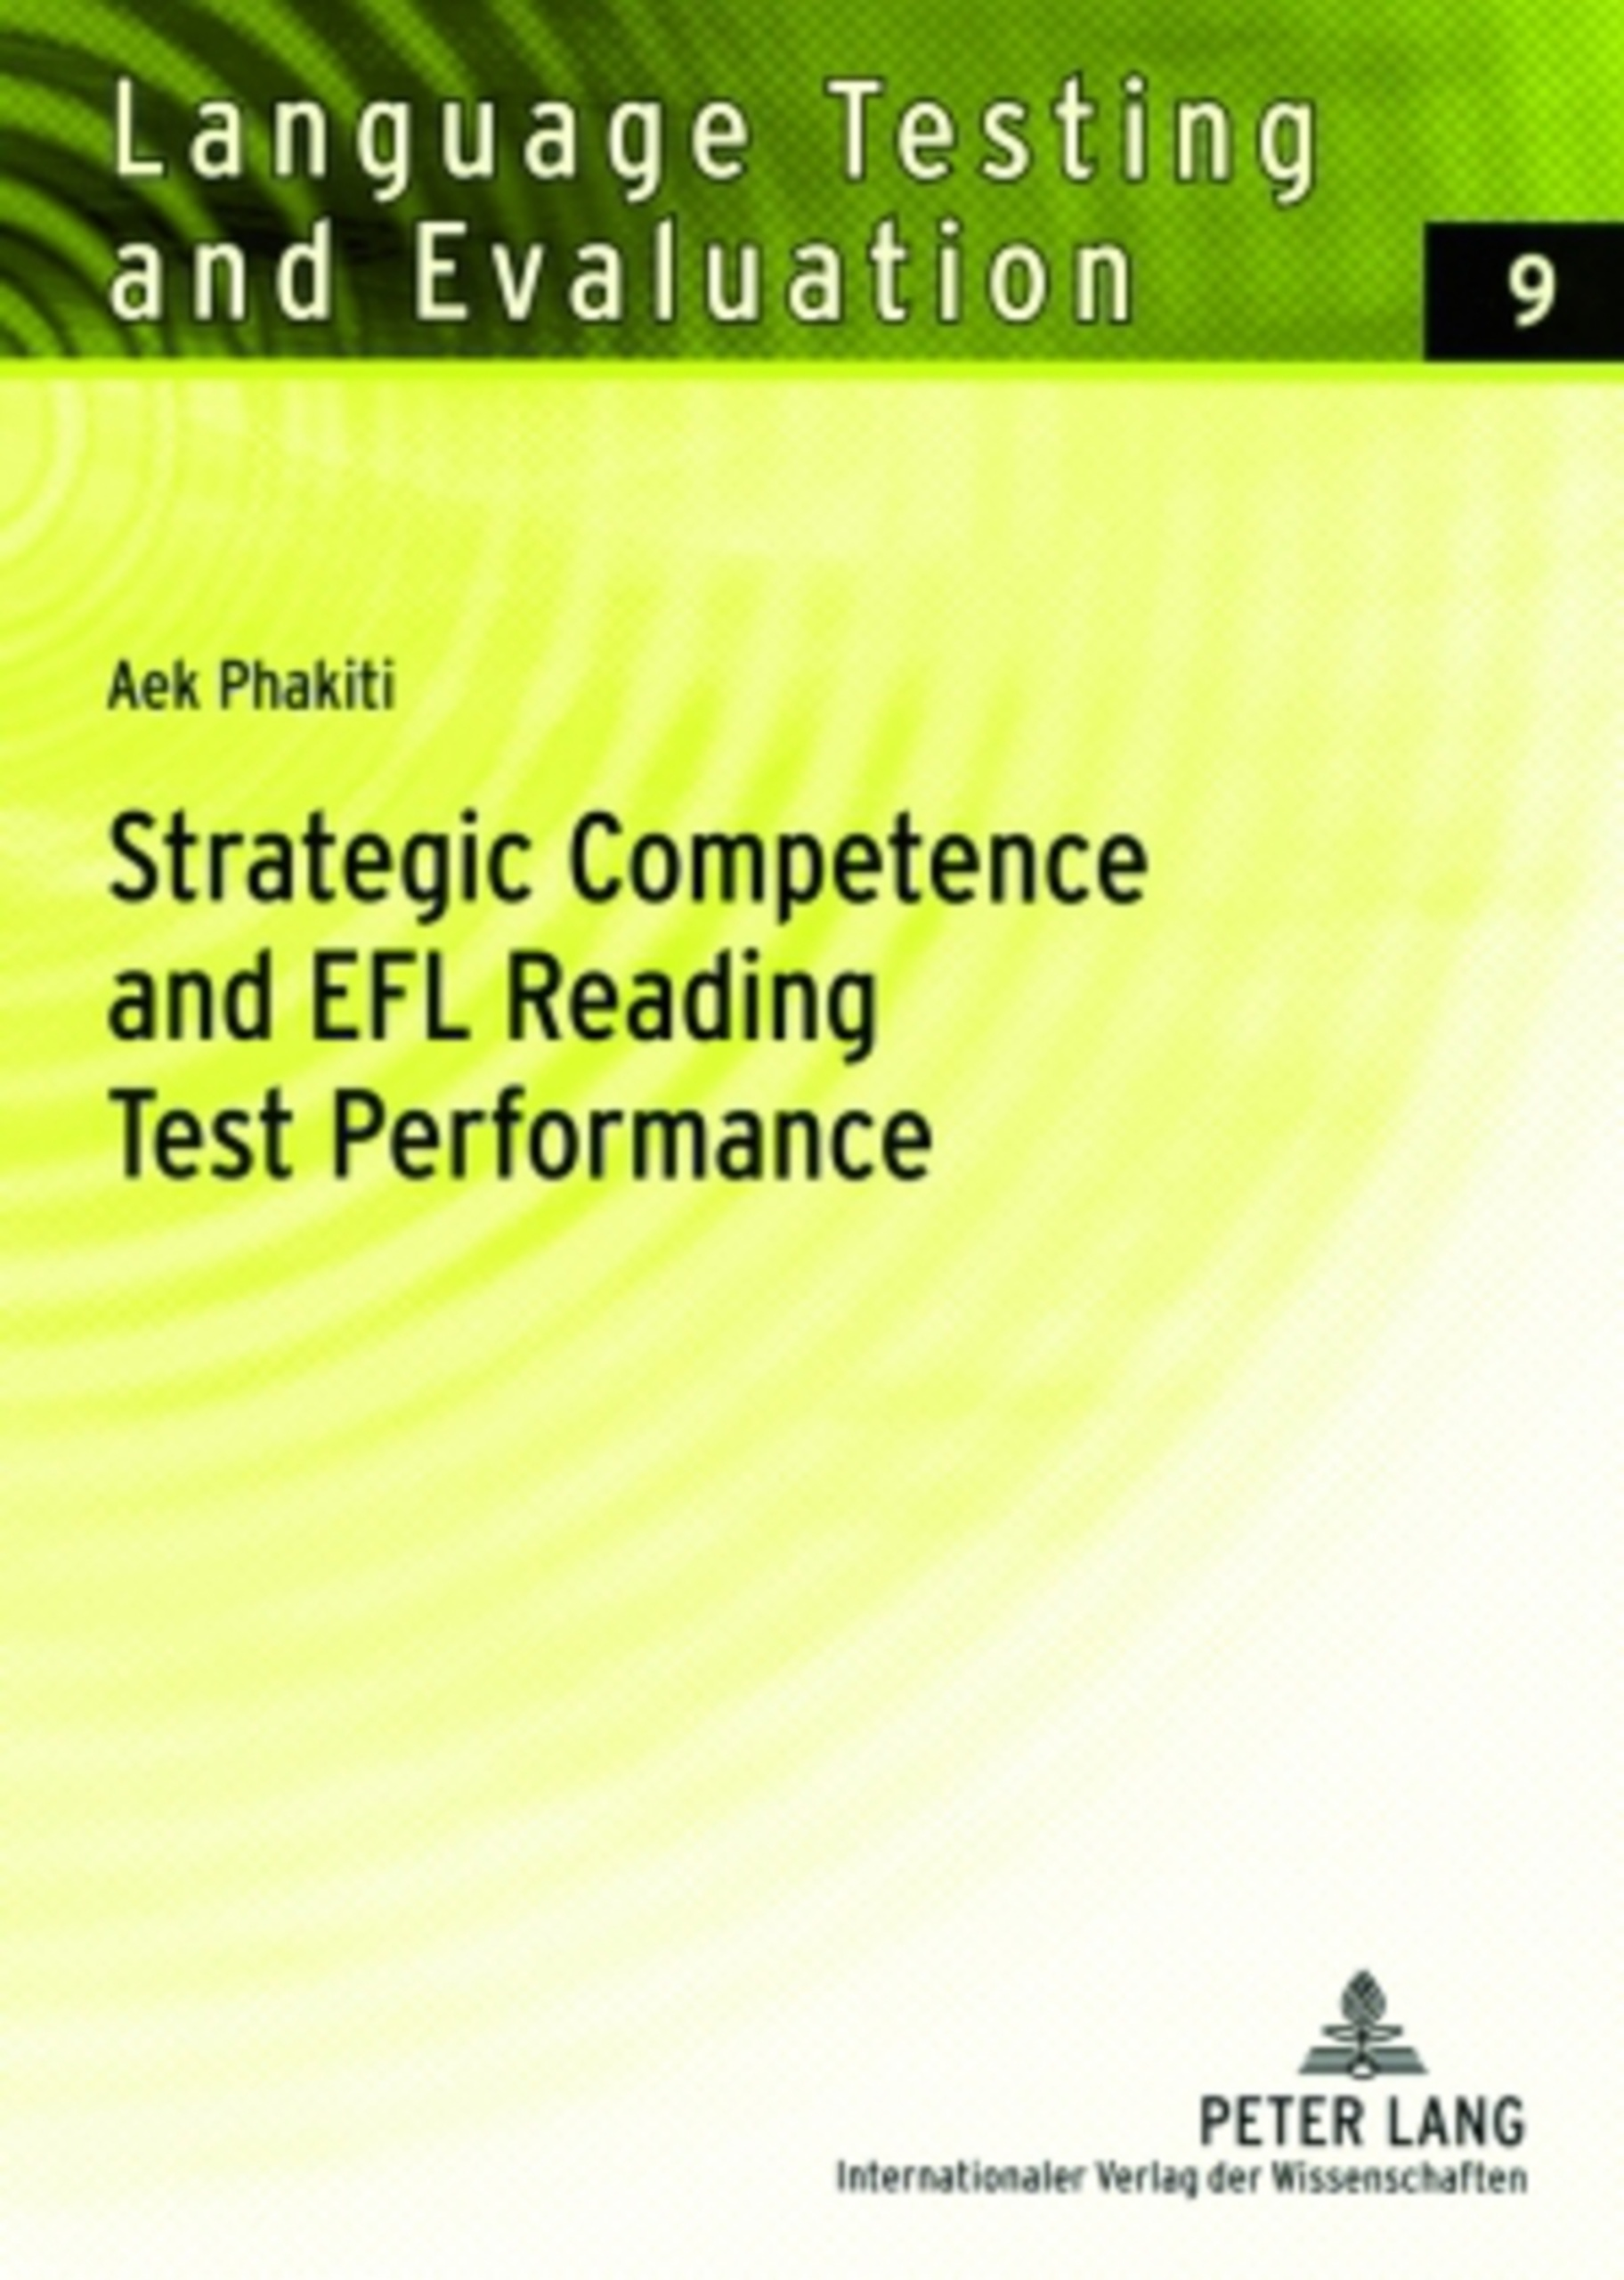 Title: Strategic Competence and EFL Reading Test Performance